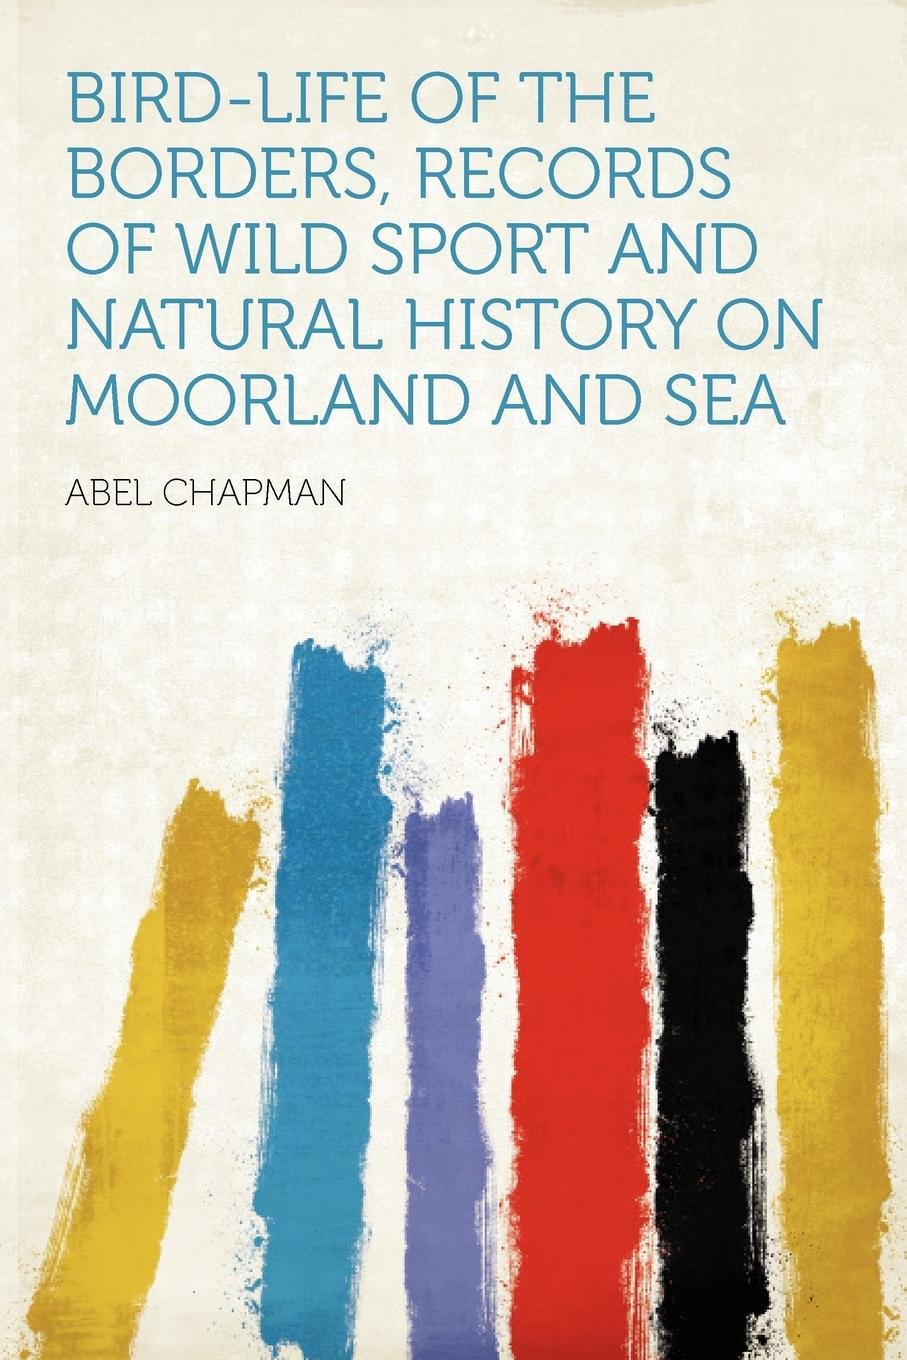 Download Bird-life of the Borders, Records of Wild Sport and Natural History on Moorland and Sea PDF